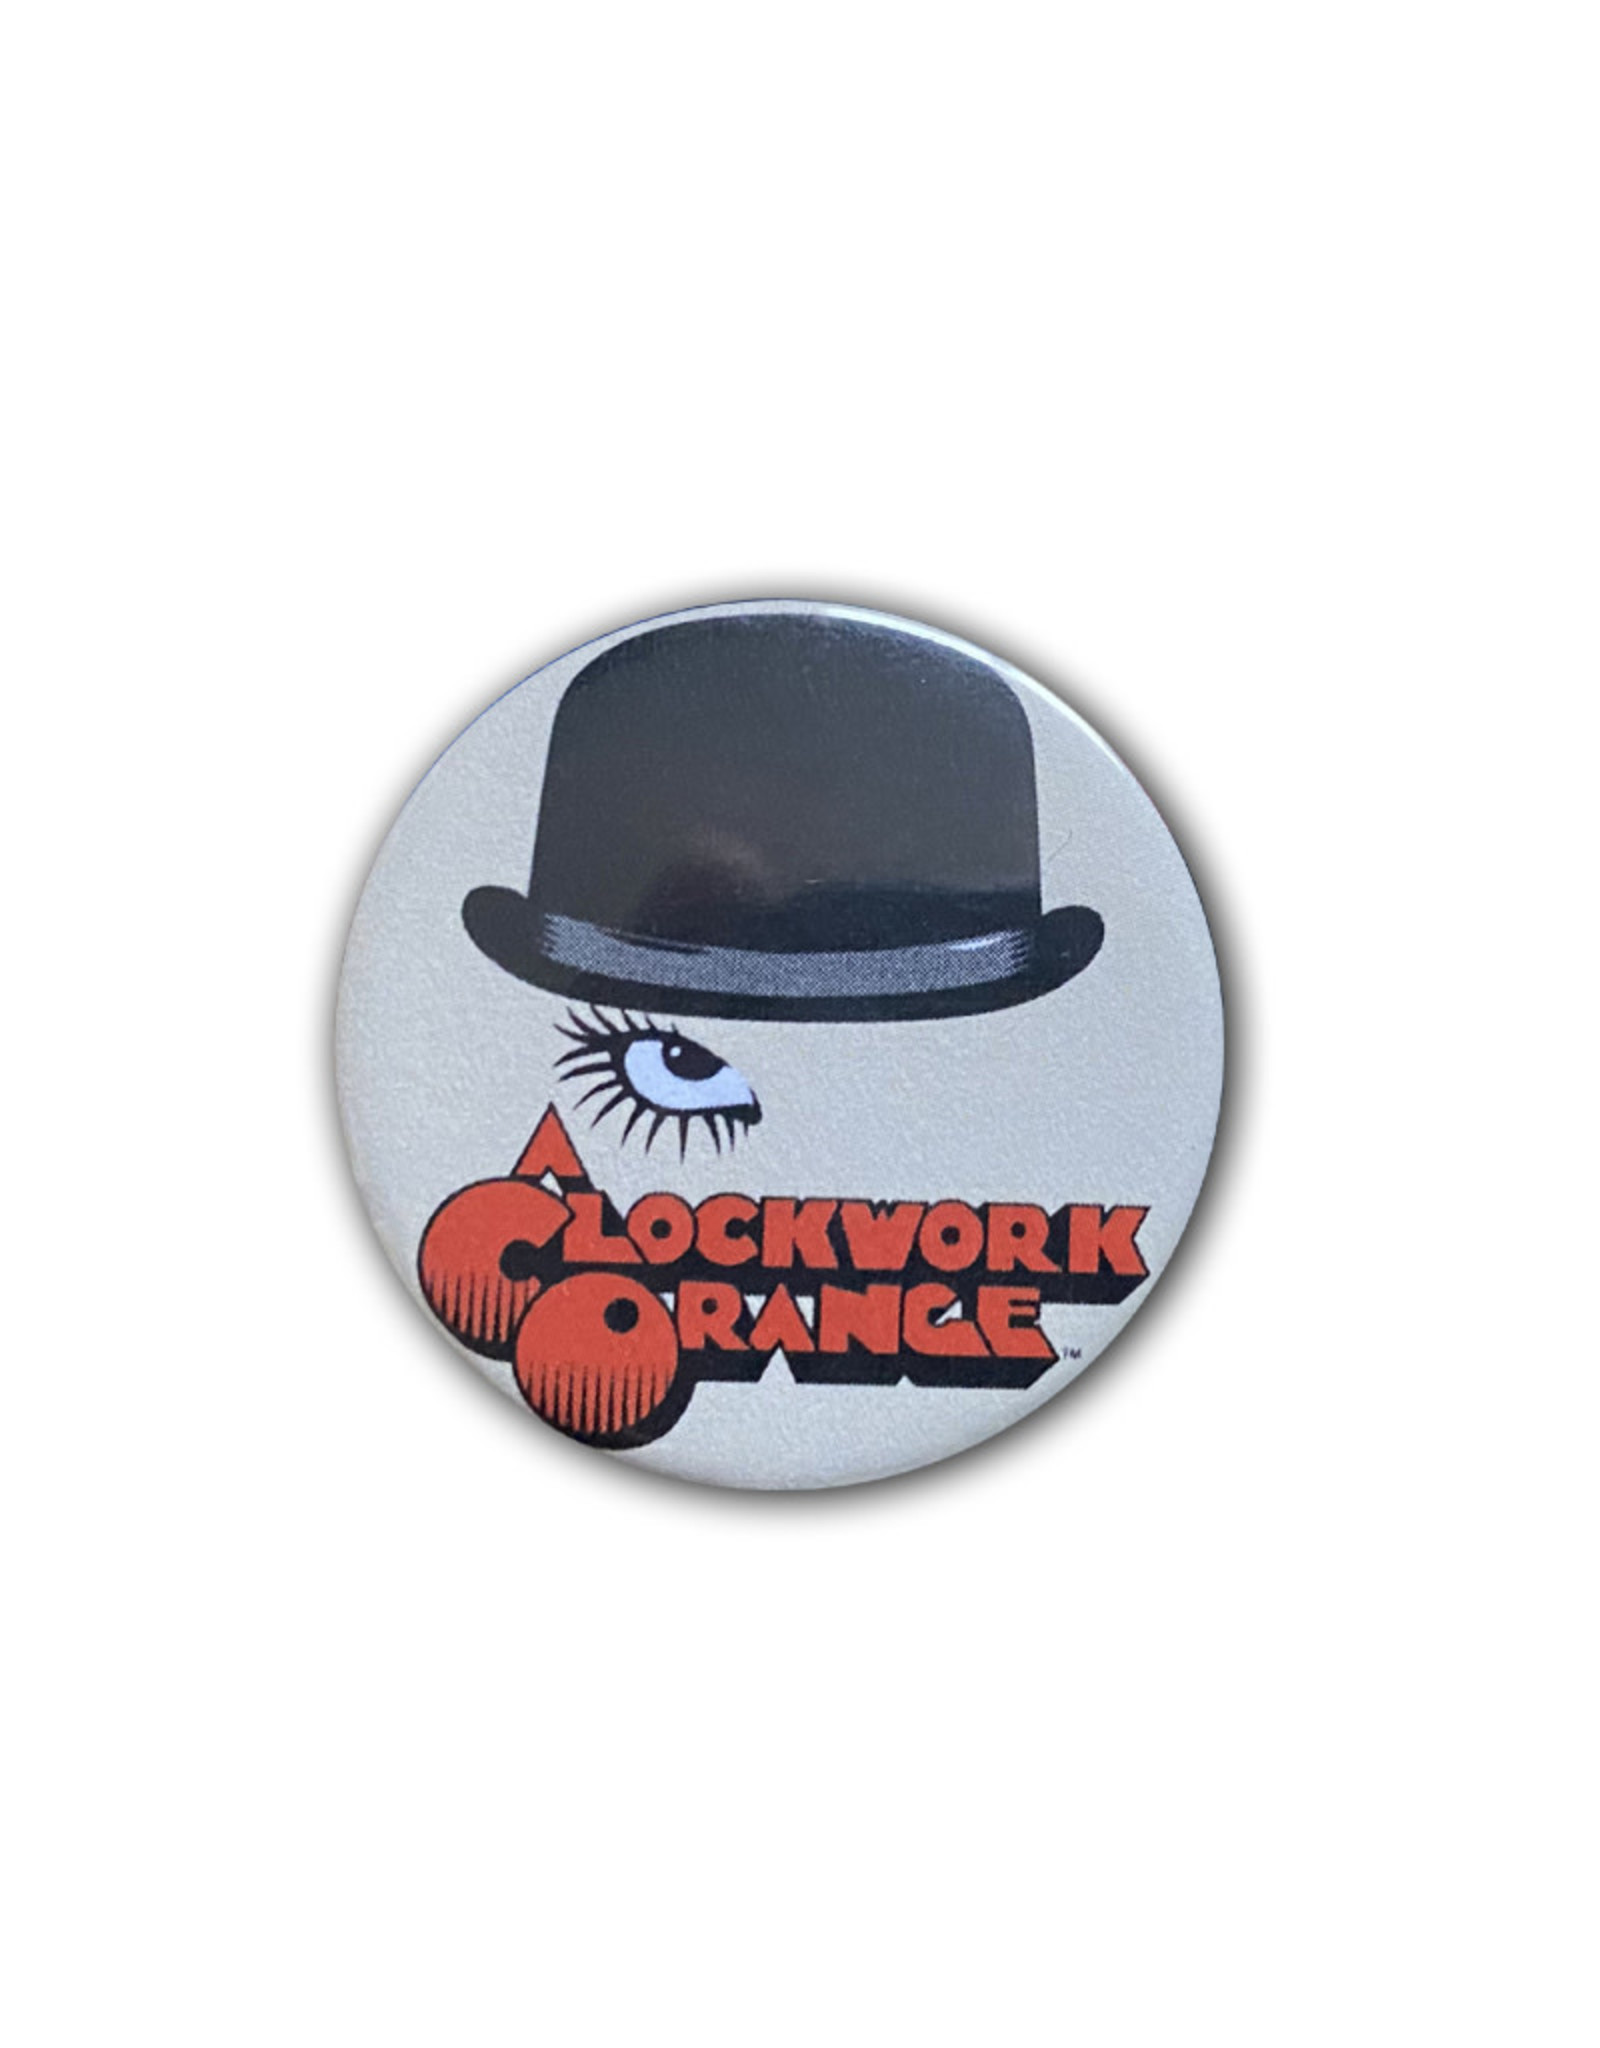 Clockwork orange ( Button ) Hat and Eye